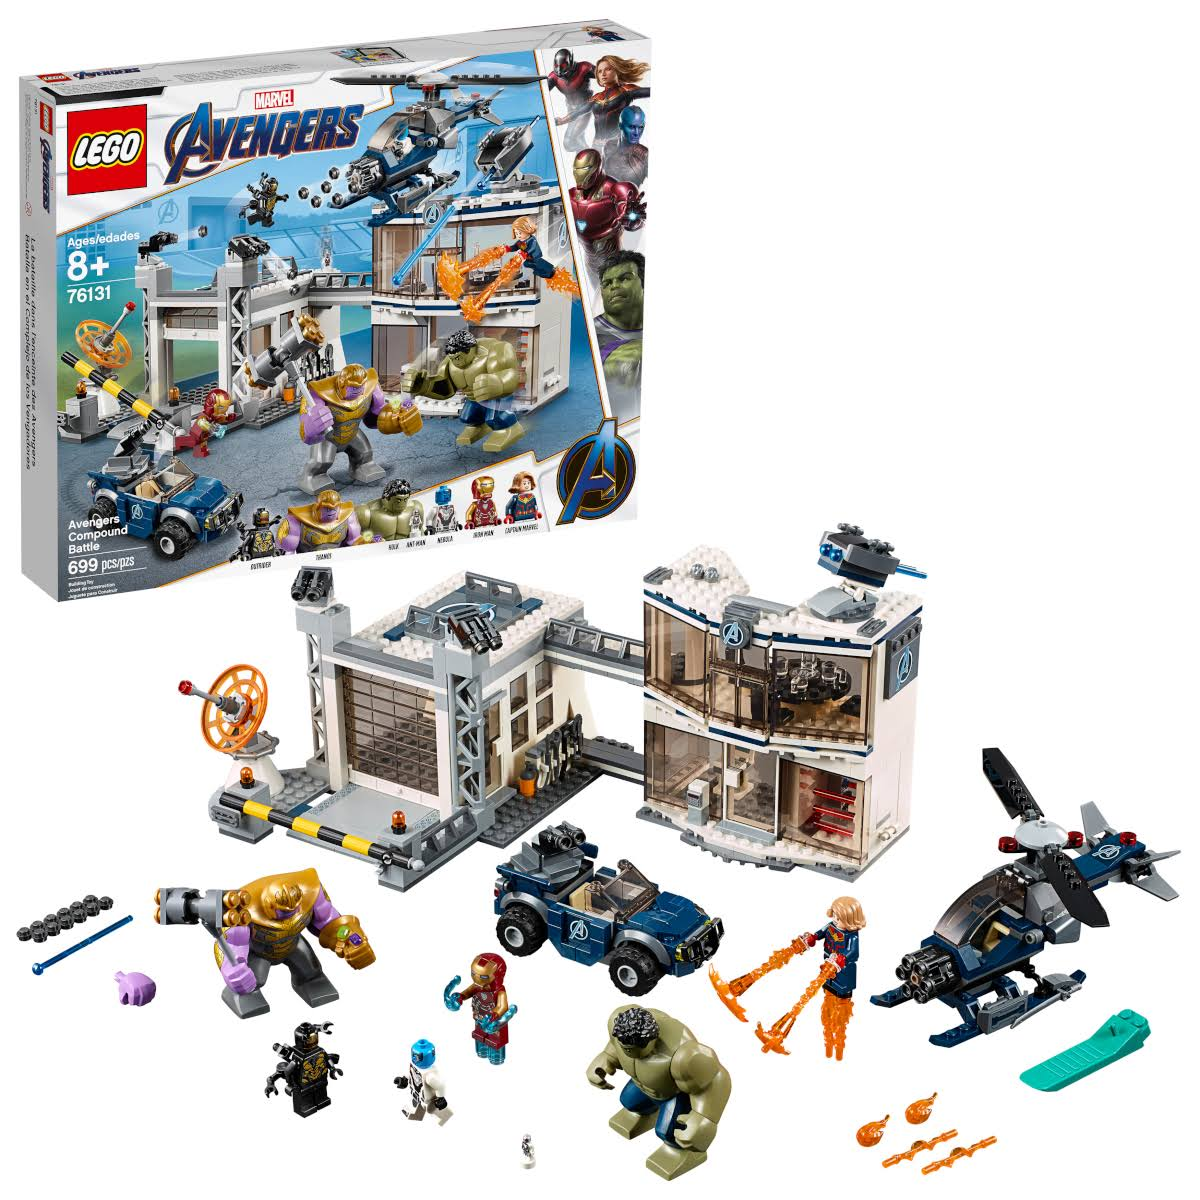 Lego 76131 Marvel Avengers Compound Battle